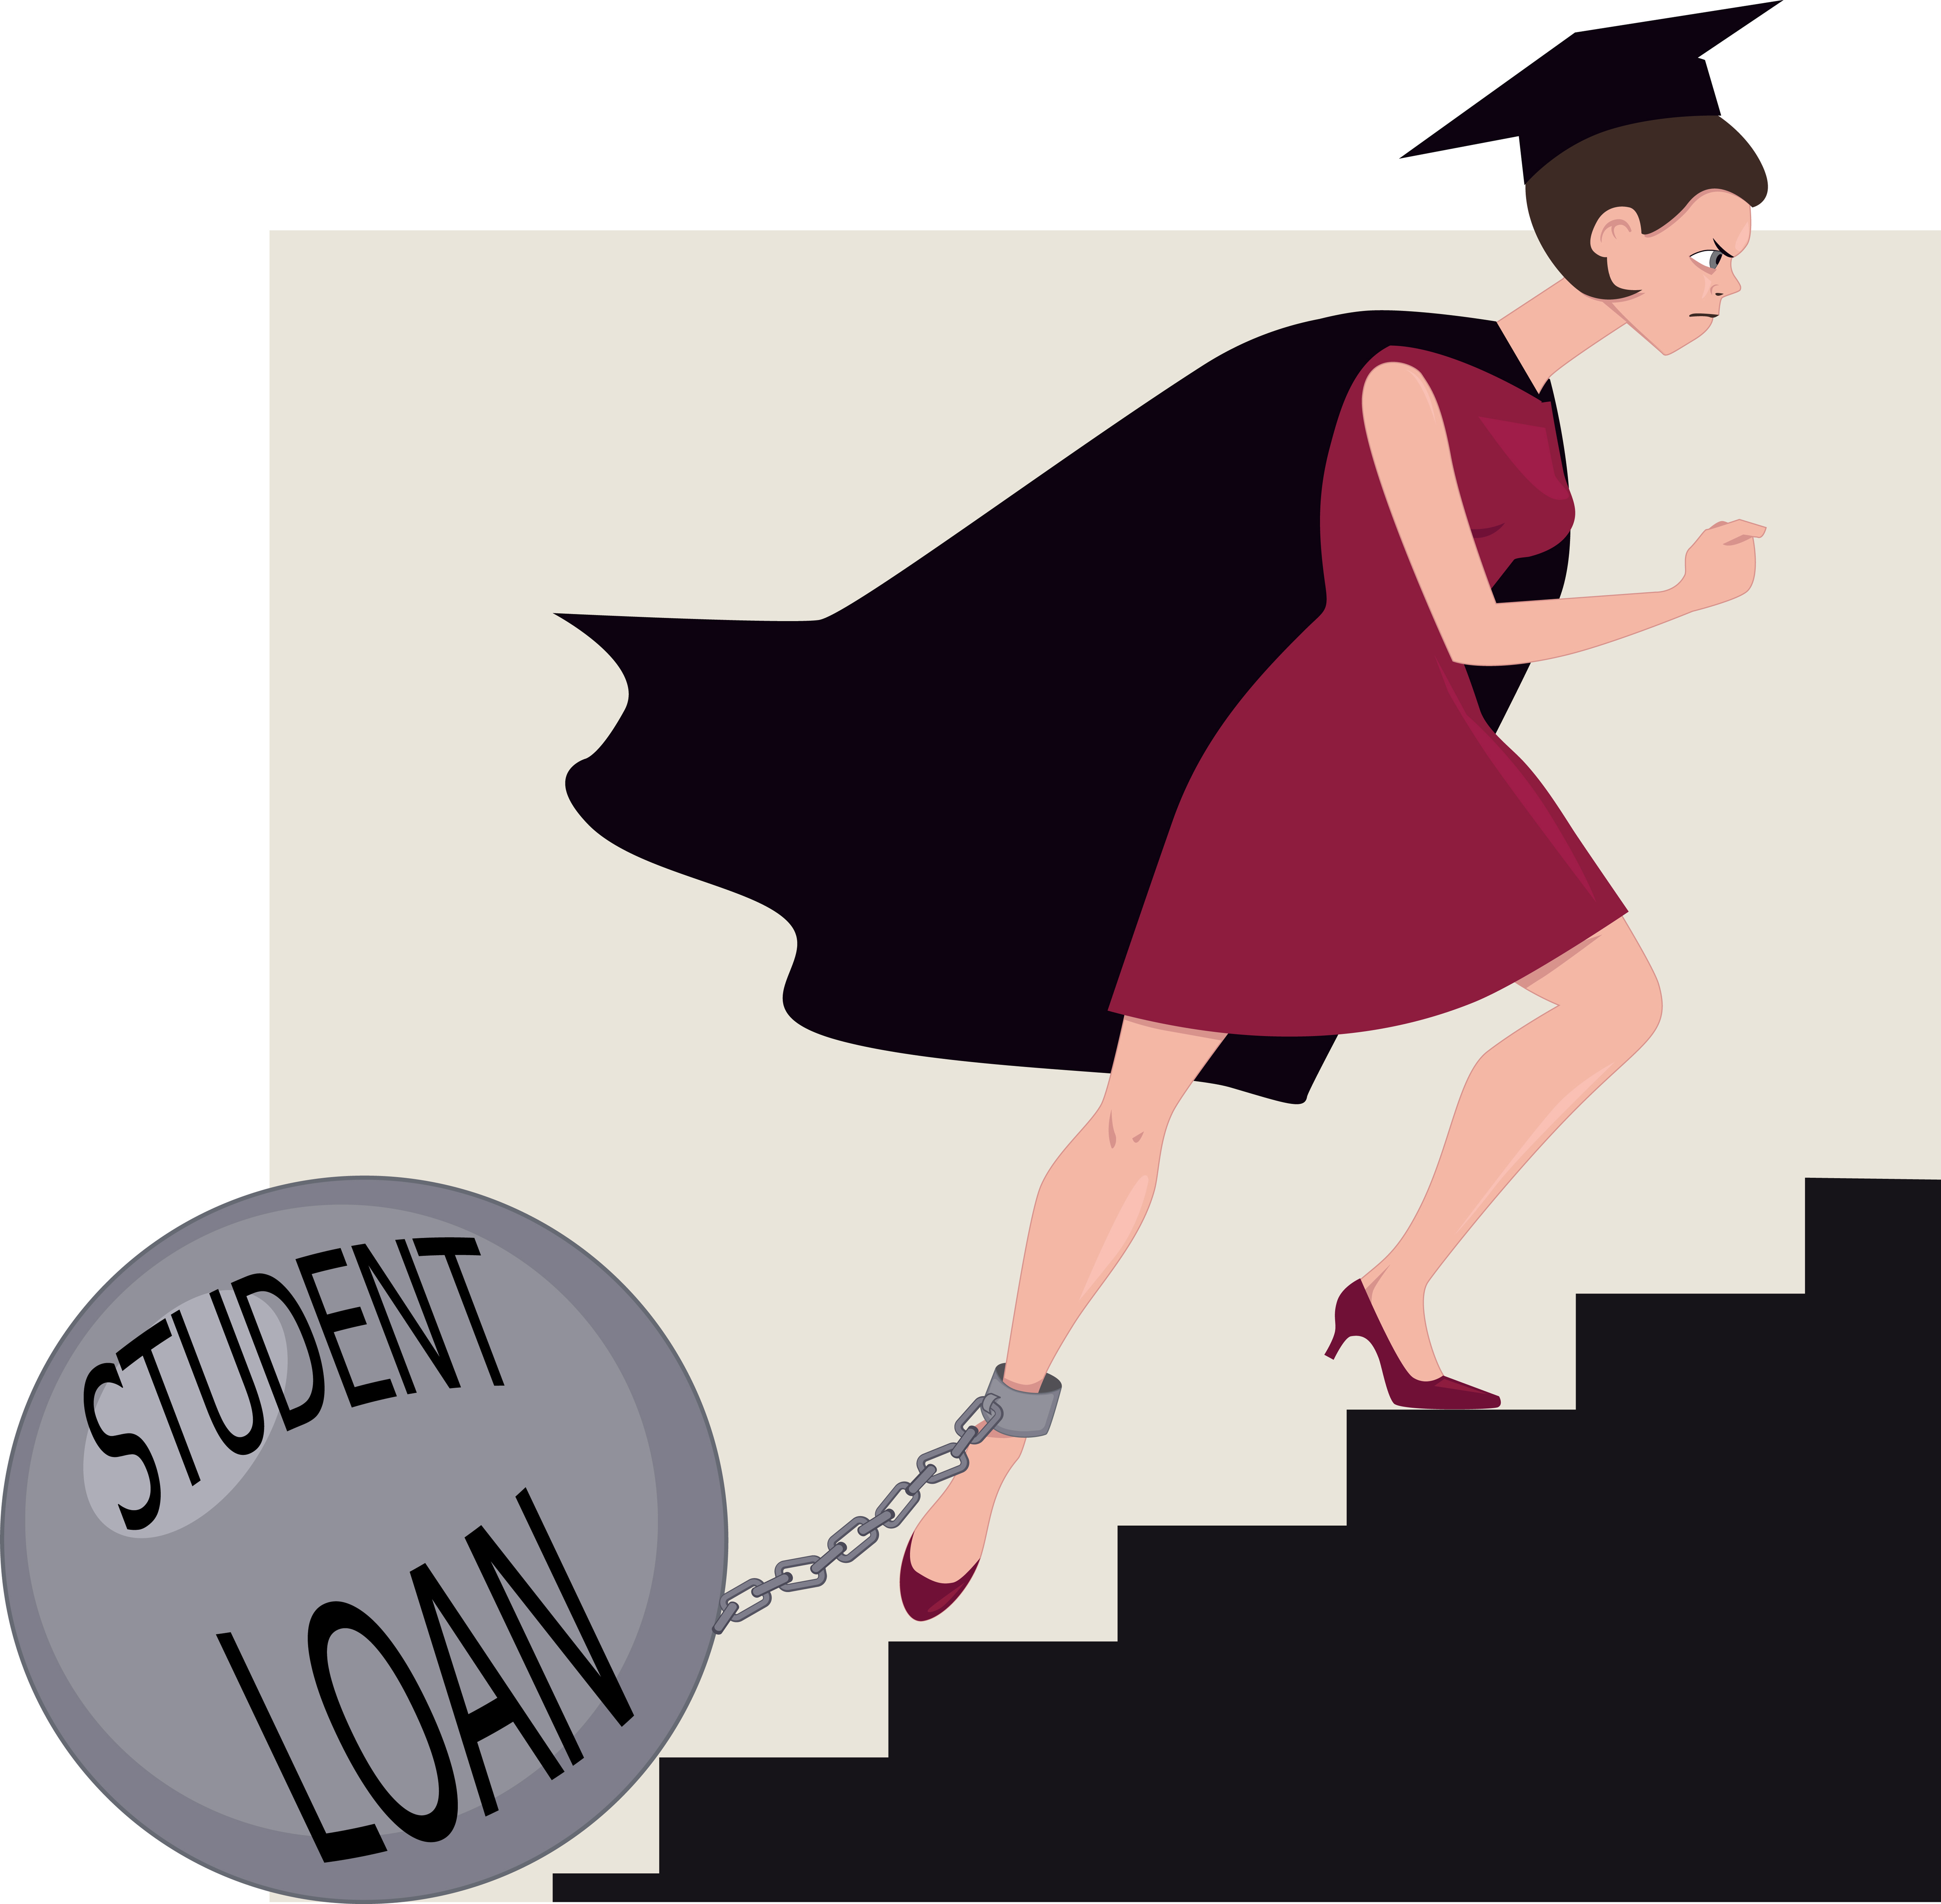 student loan debt essays Student loan debt isn't just hurting a generation of college grads it's also crushing the financial futures of the parents who cosigned for their kids susan zambo, a 50-something mother of three from ohio, had an excellent credit score in the 780s in 2010.